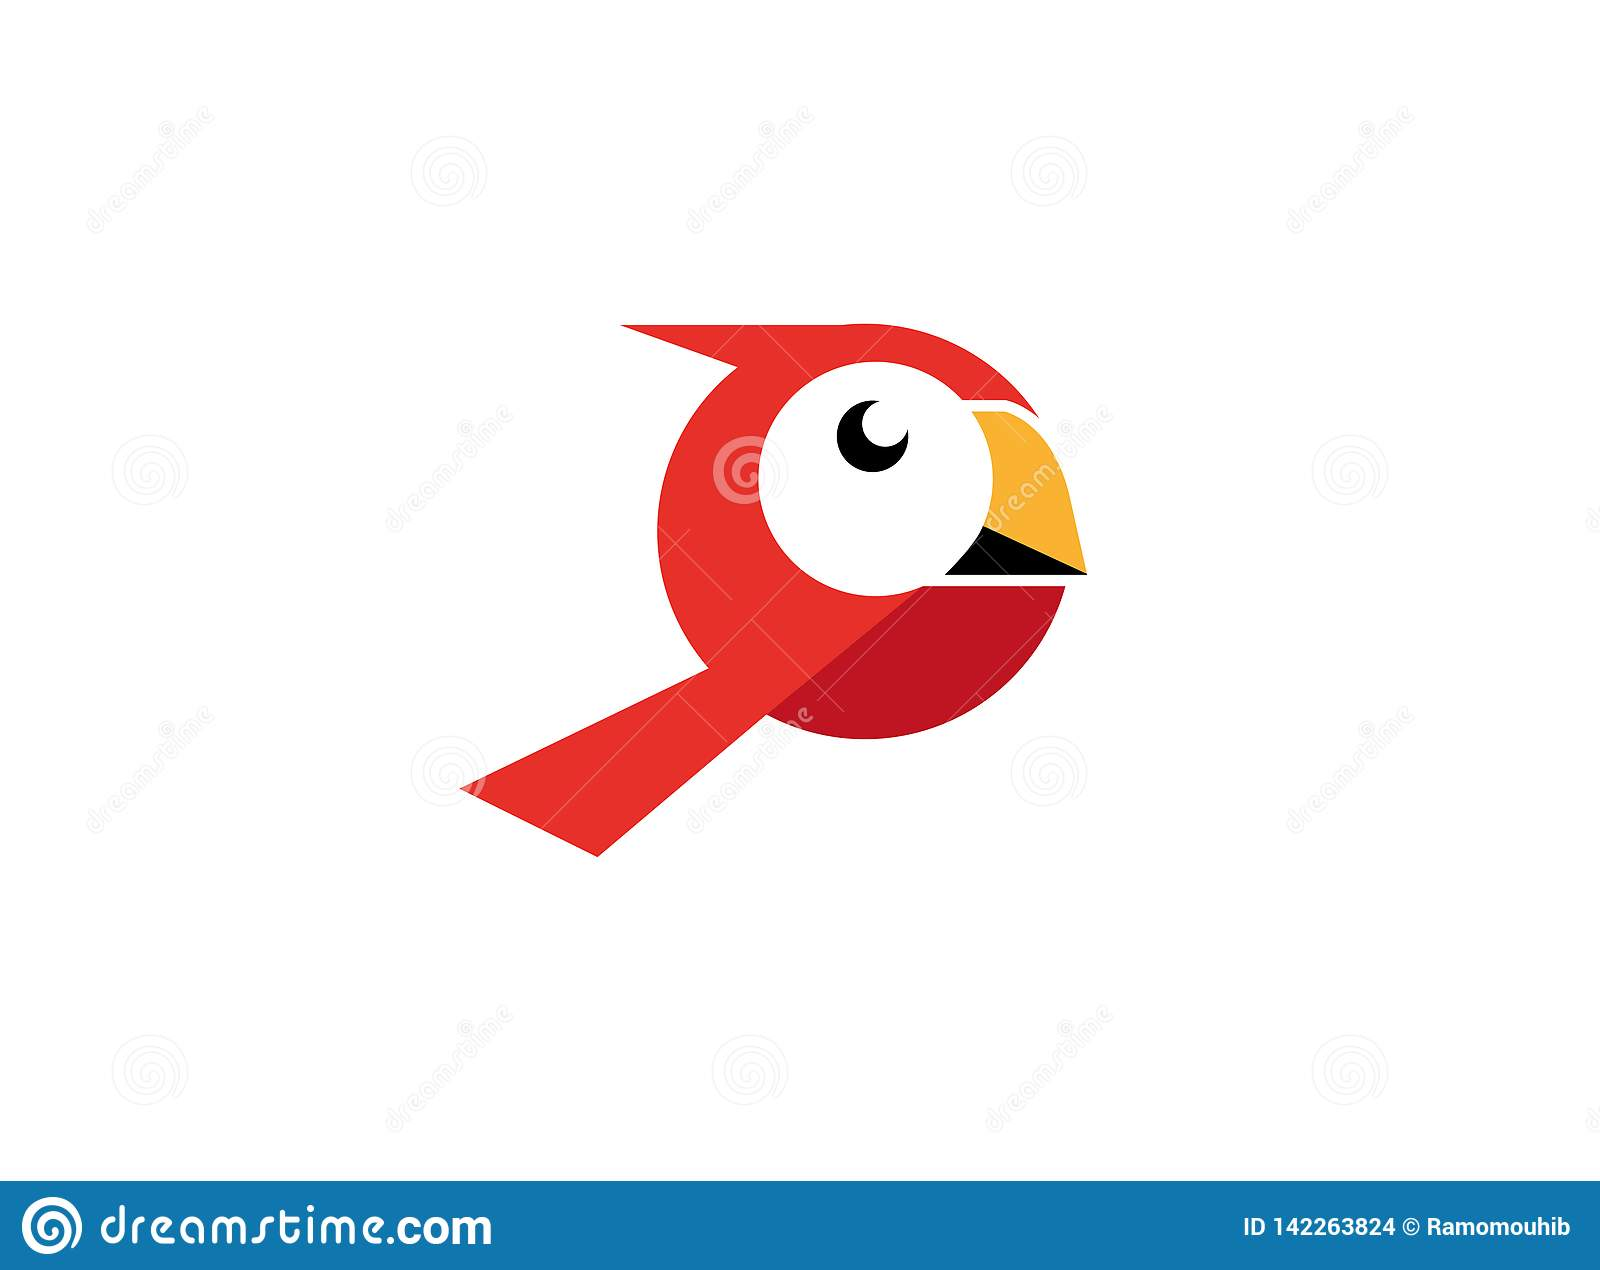 Red Bird with white face and yellow beak for logo